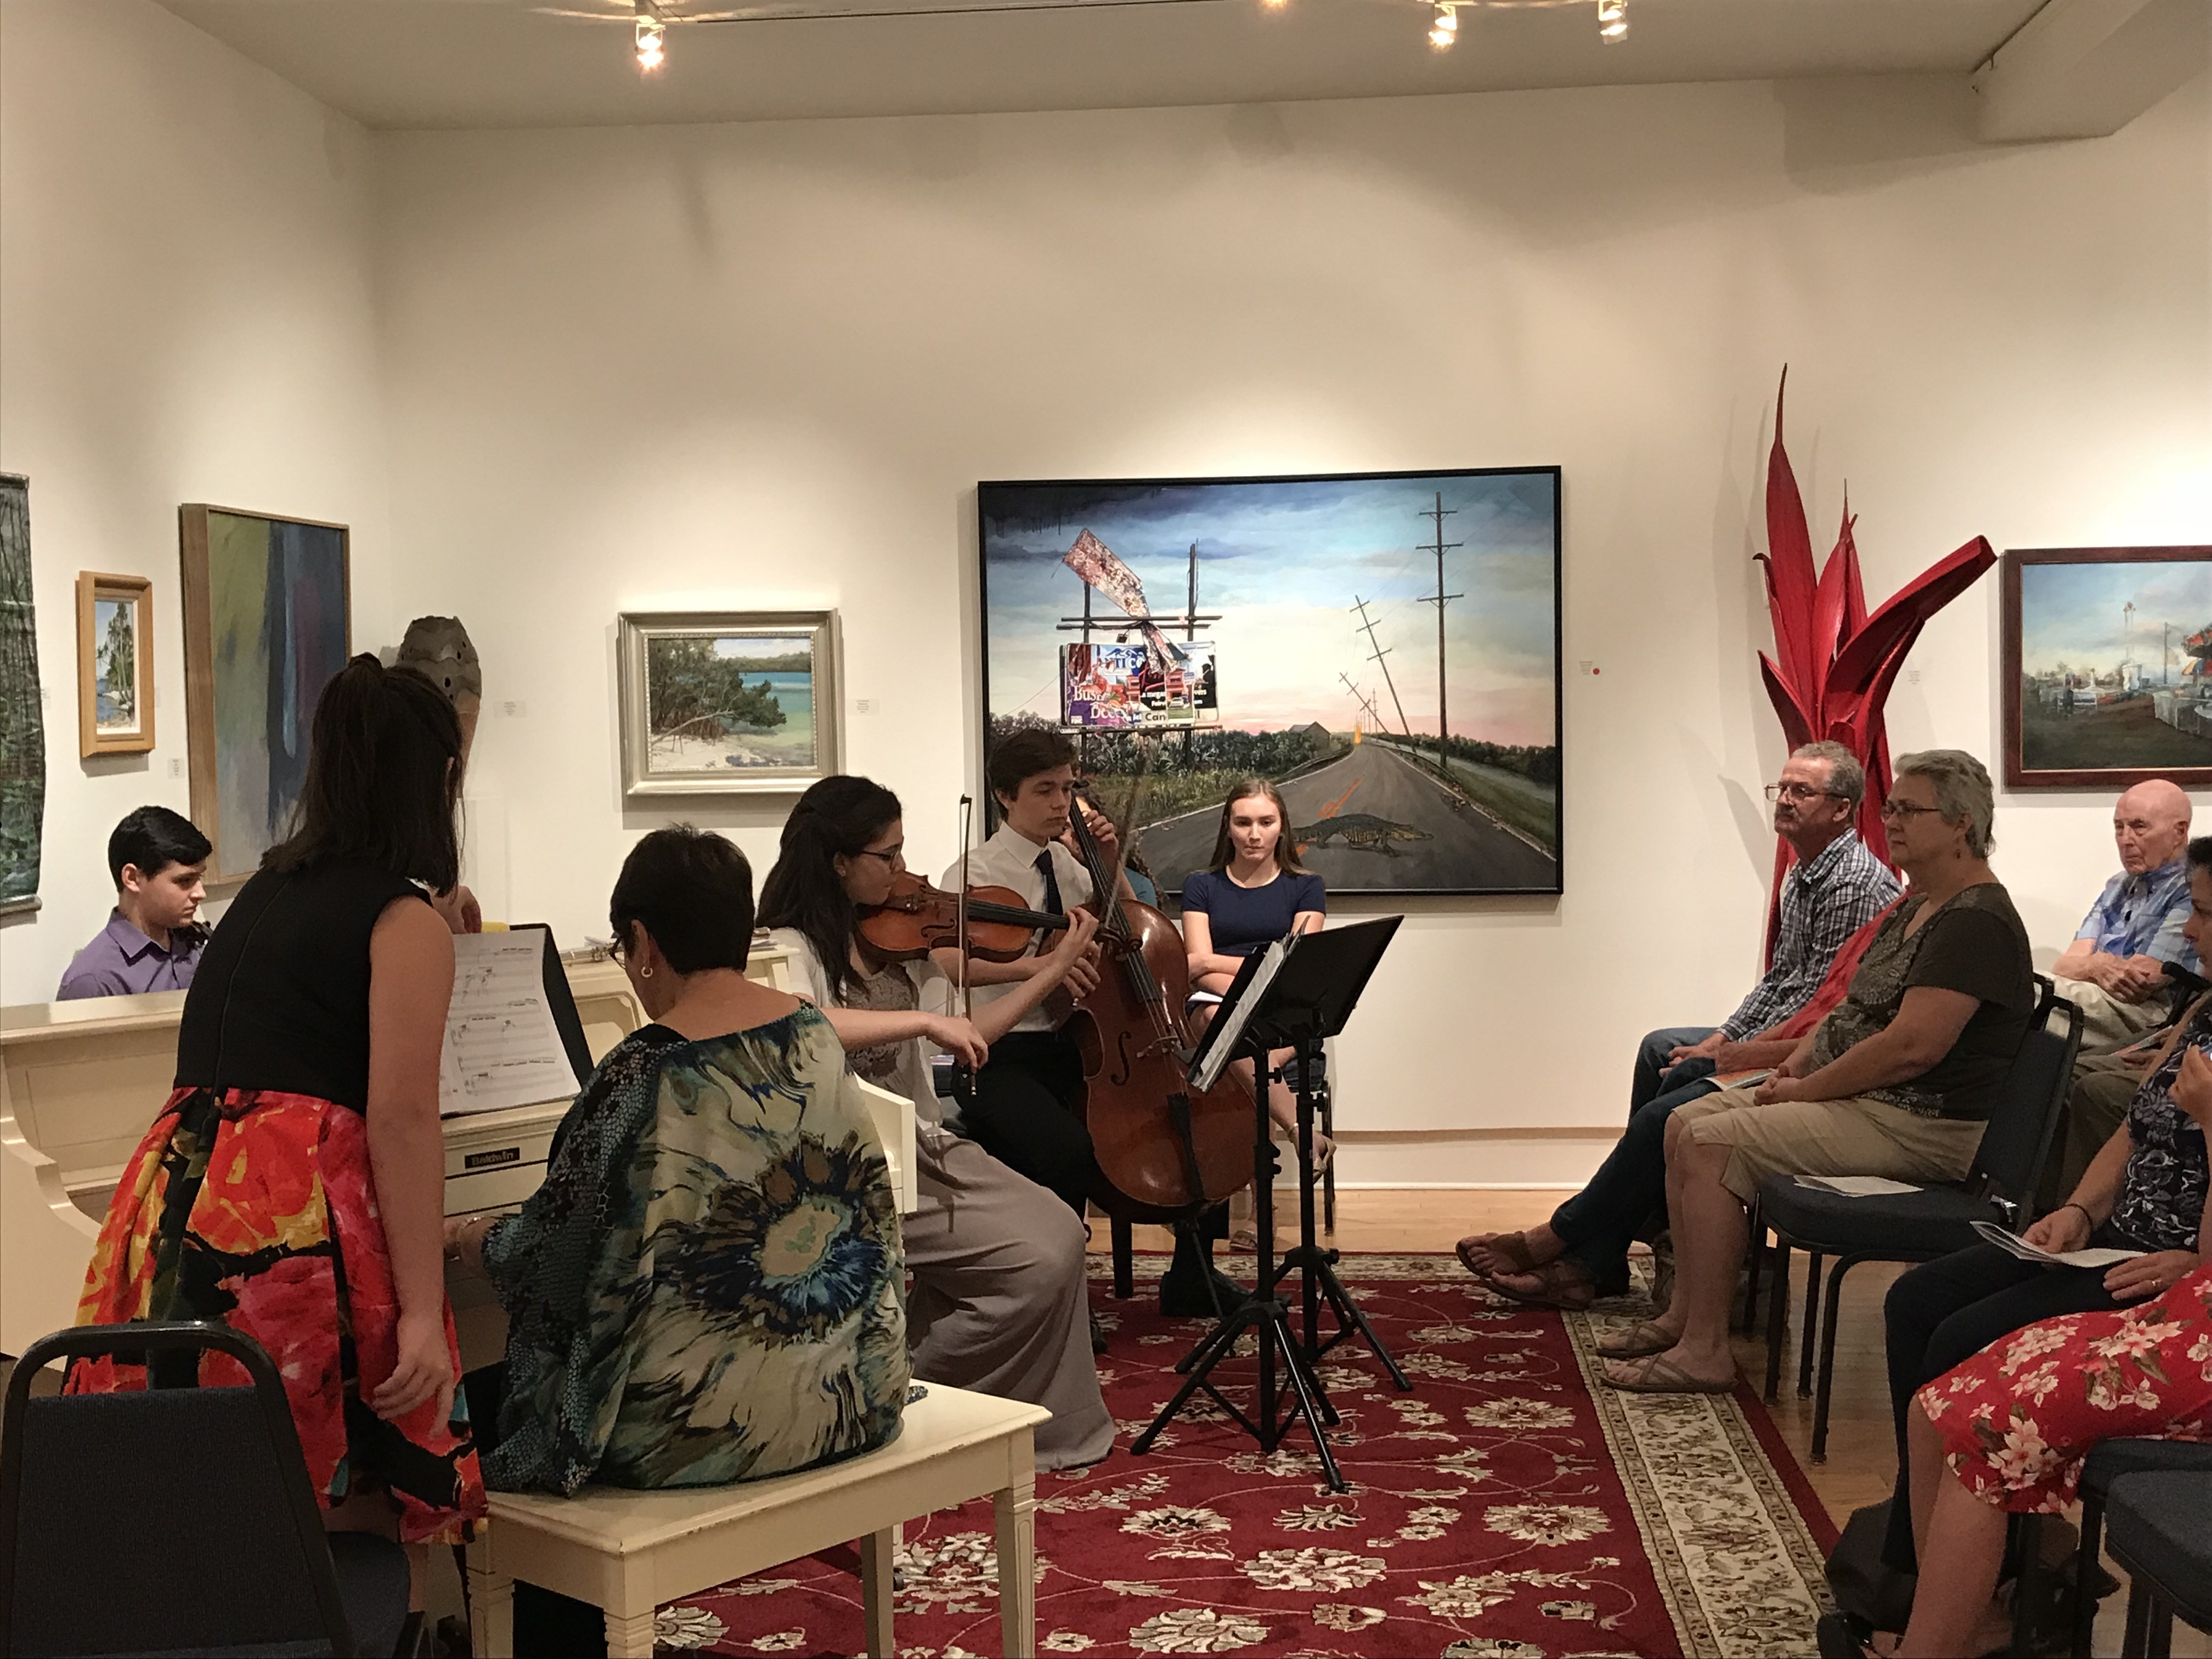 Sunset Concerts at the Gallery